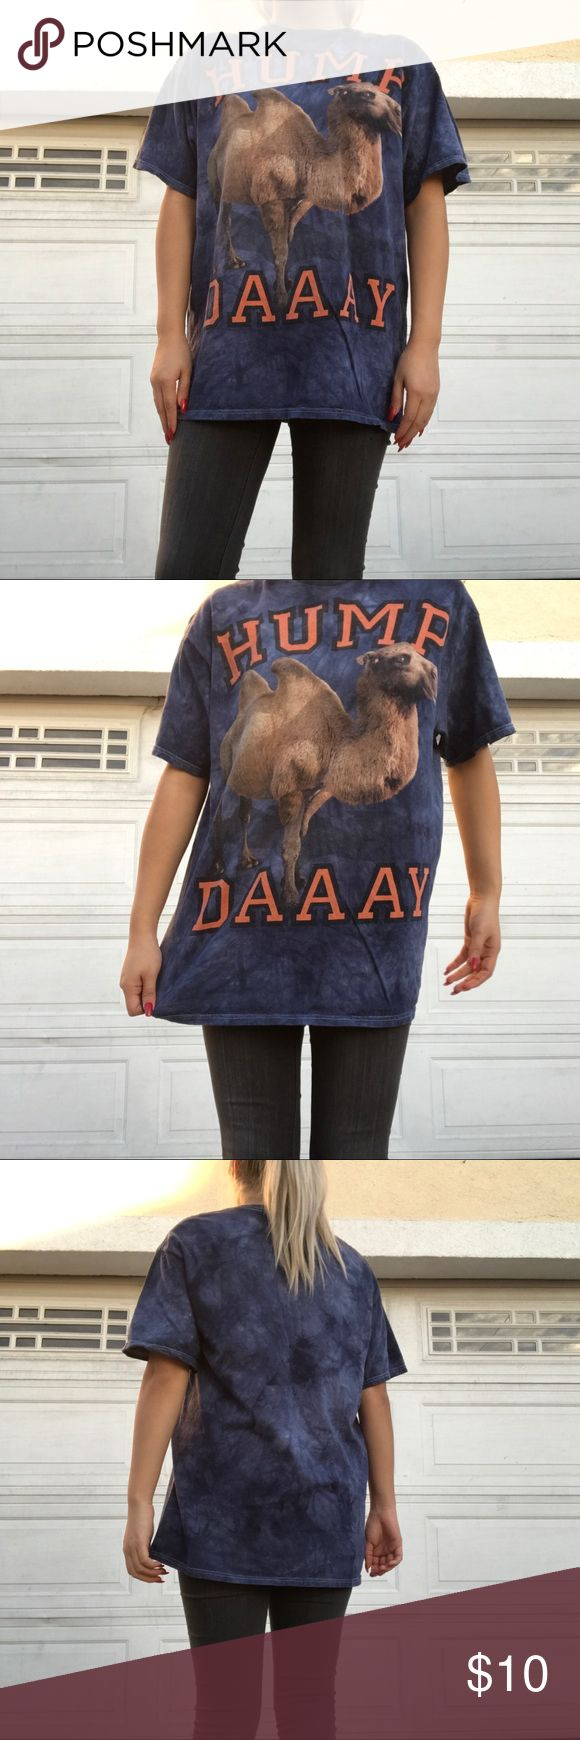 Hump day camel tie dye graphic tee HUMP DAAAY camel tie dye shirt 😍 men's size large Shirts Tees - Short Sleeve